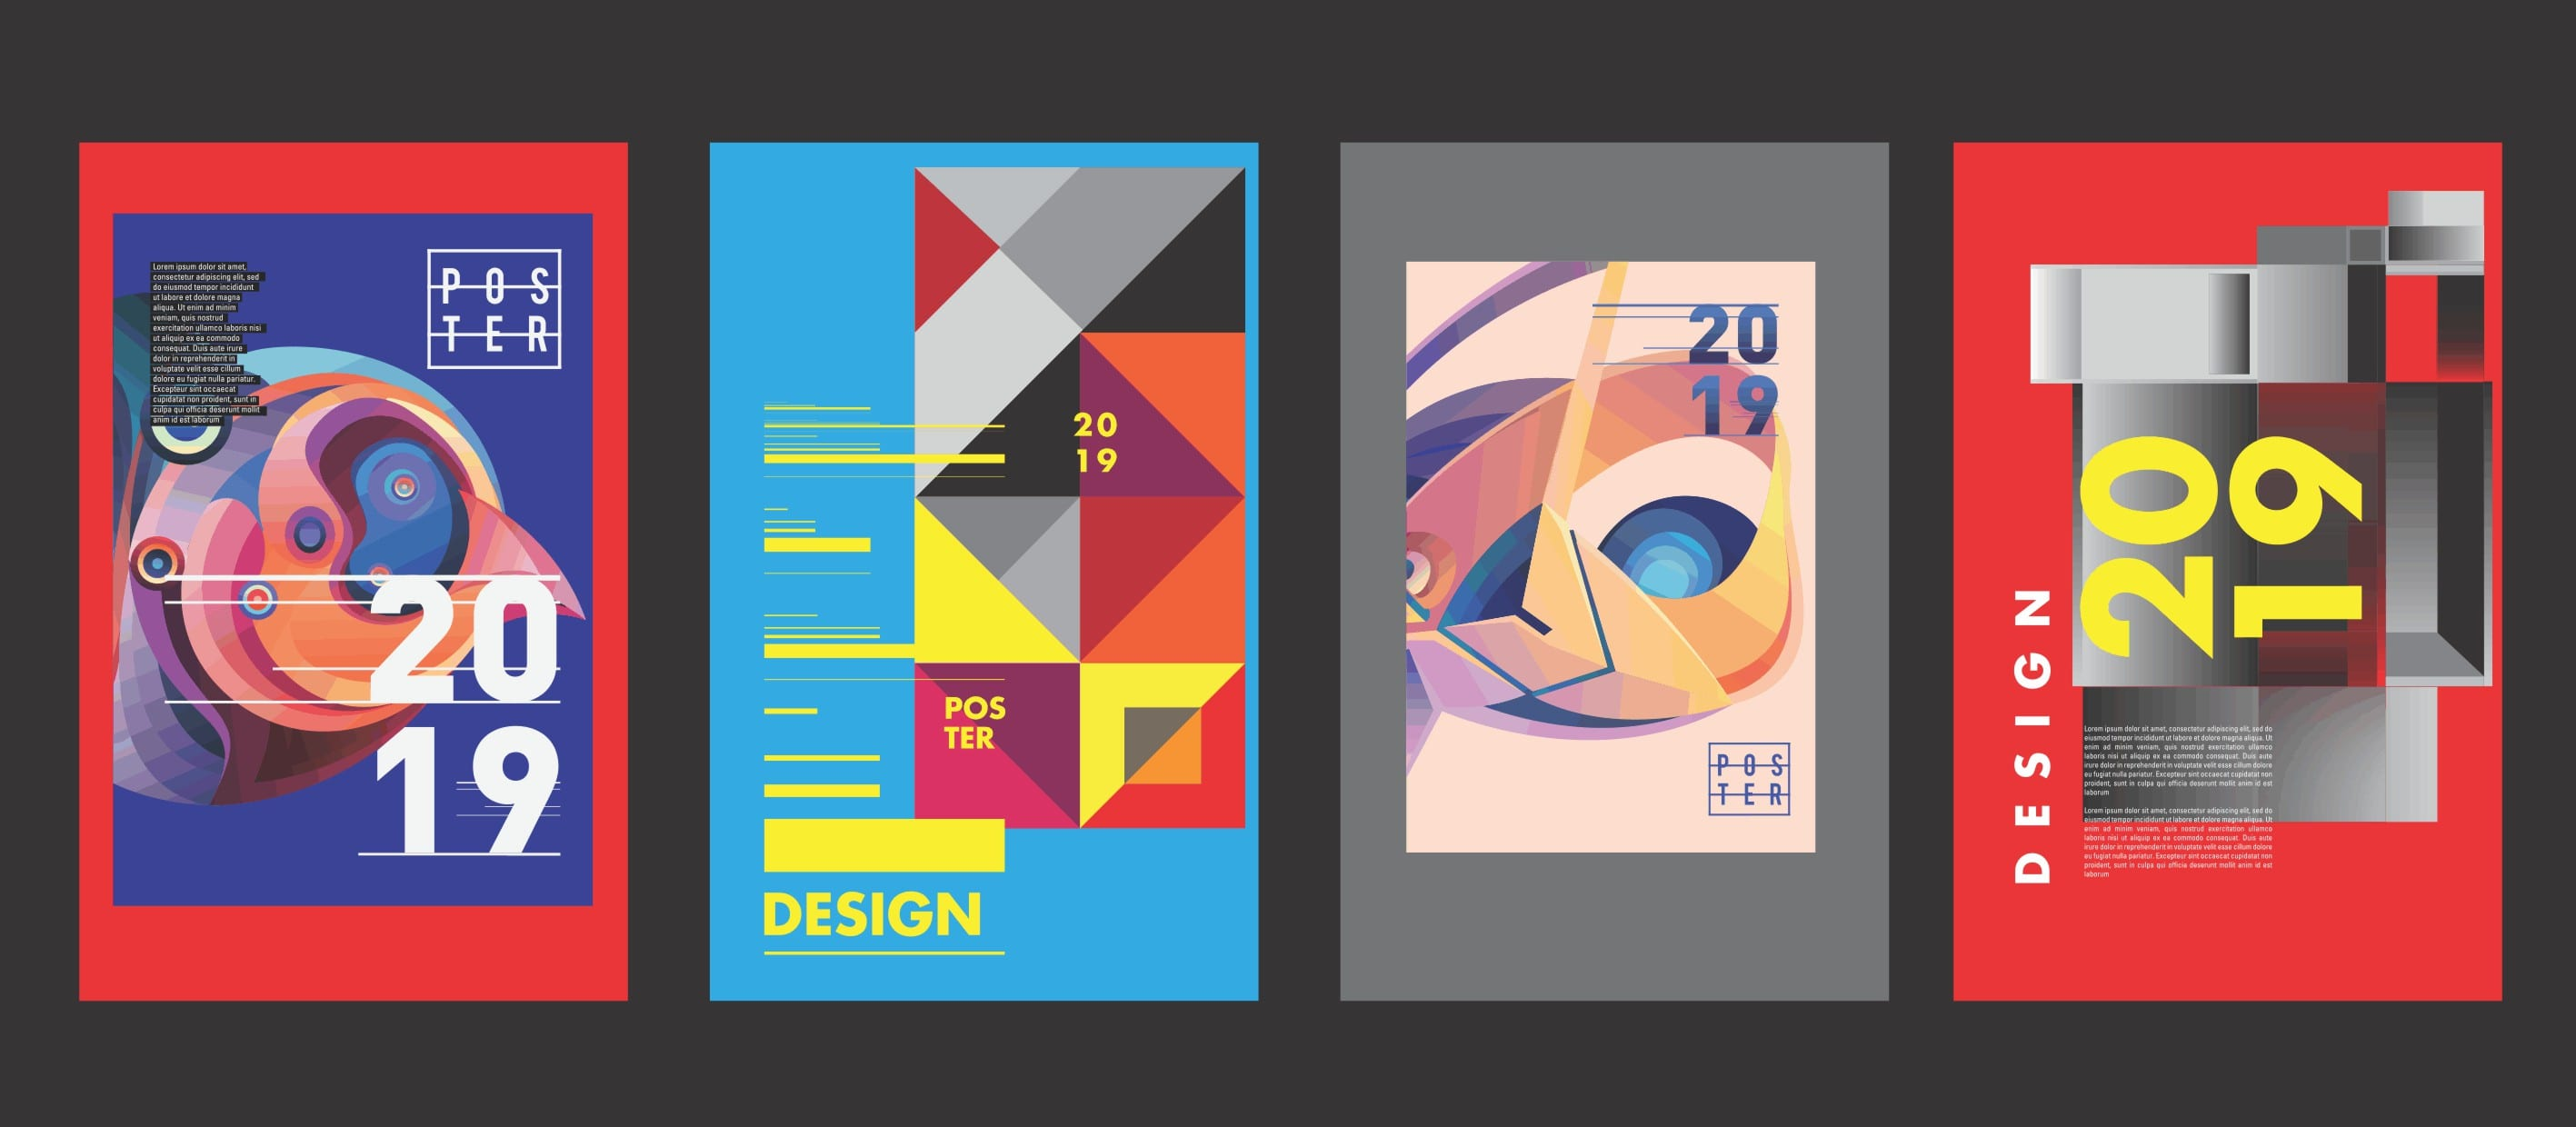 Designs concepts with asymmetrical designs, a graphic design trend for 2019